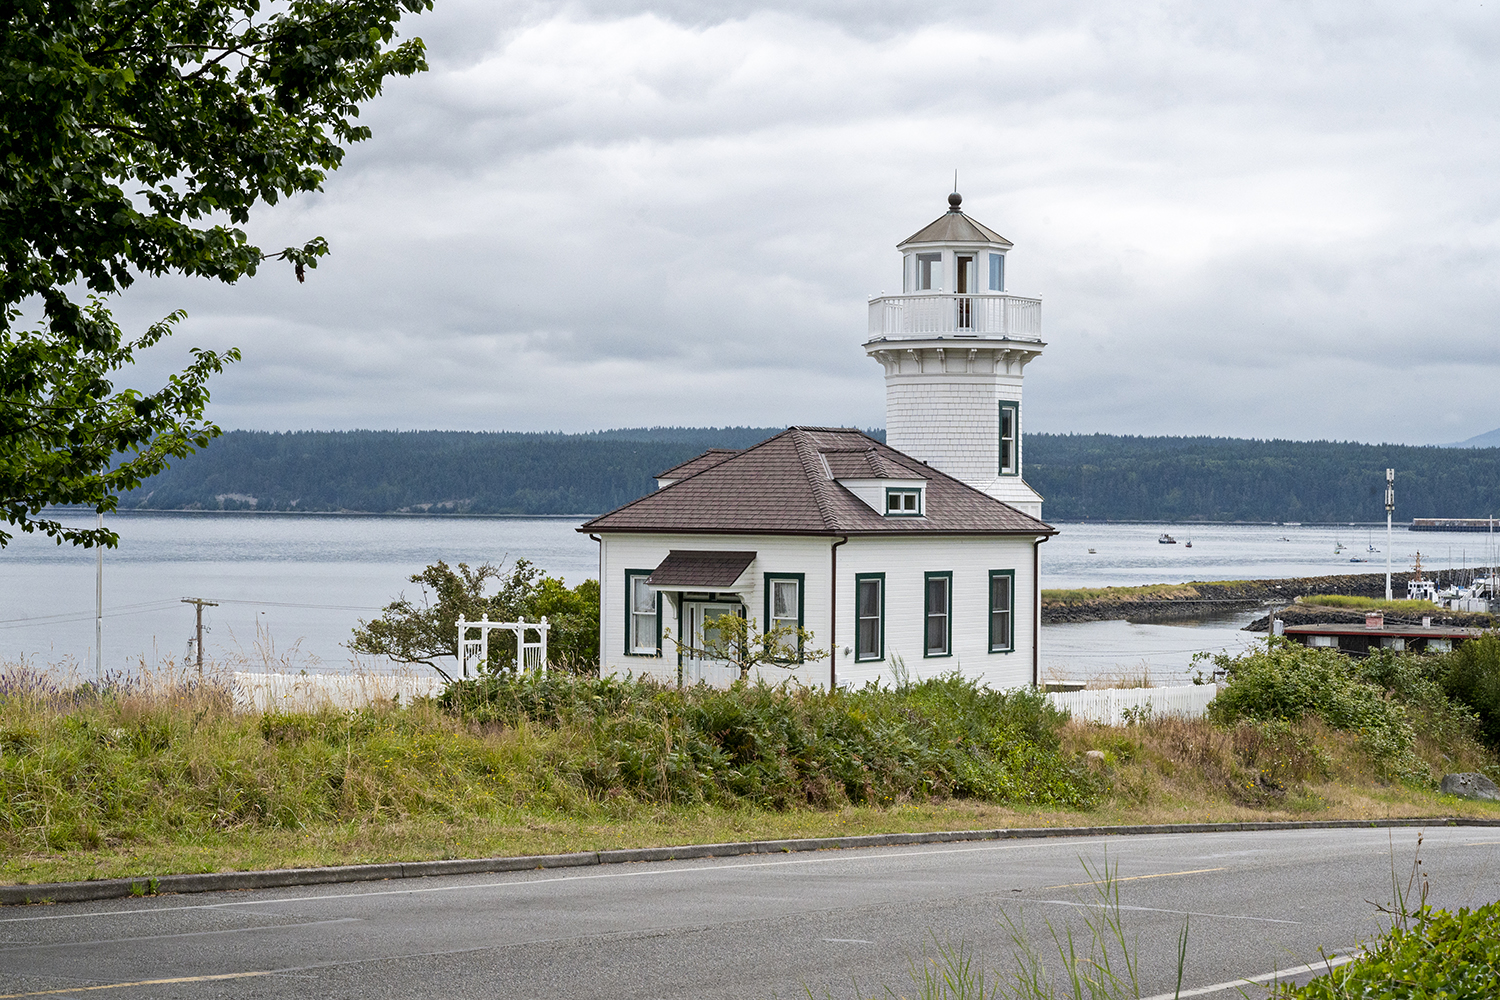 Built in 1990, the Dimick Lighthouse was built as a Victorian-style vacation home for the Dimick family and features a 50-foot tower that overlooks the ferry landing. (Image: Rachael Jones / Seattle Refined)